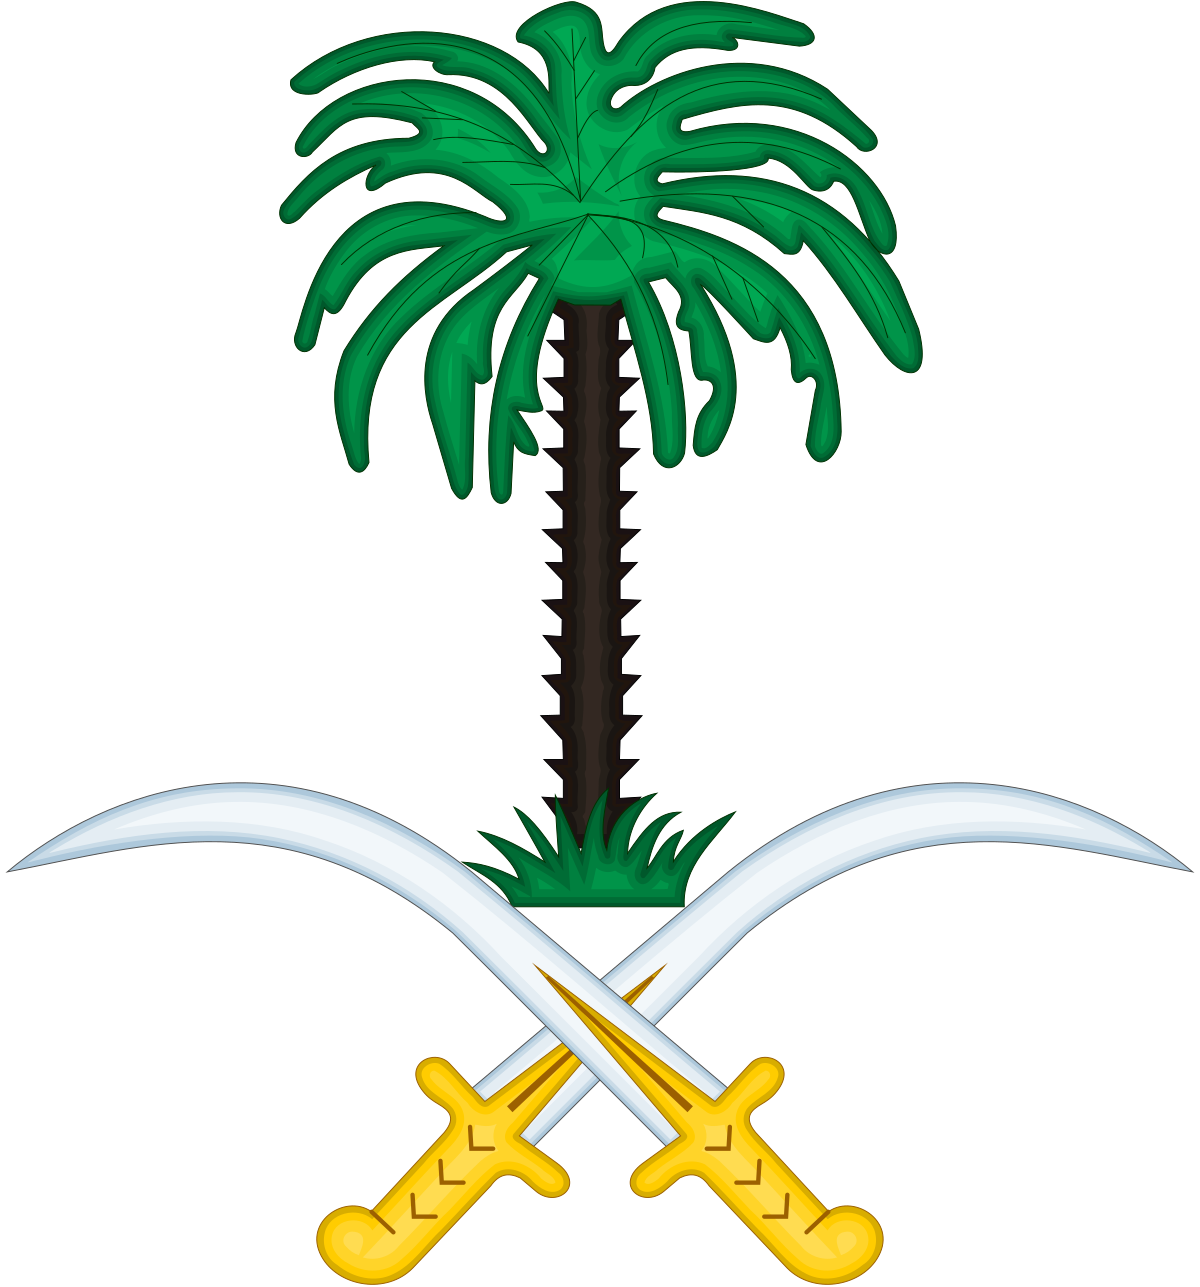 Emblem of saudi arabia. Intolerable acts clipart battle scene